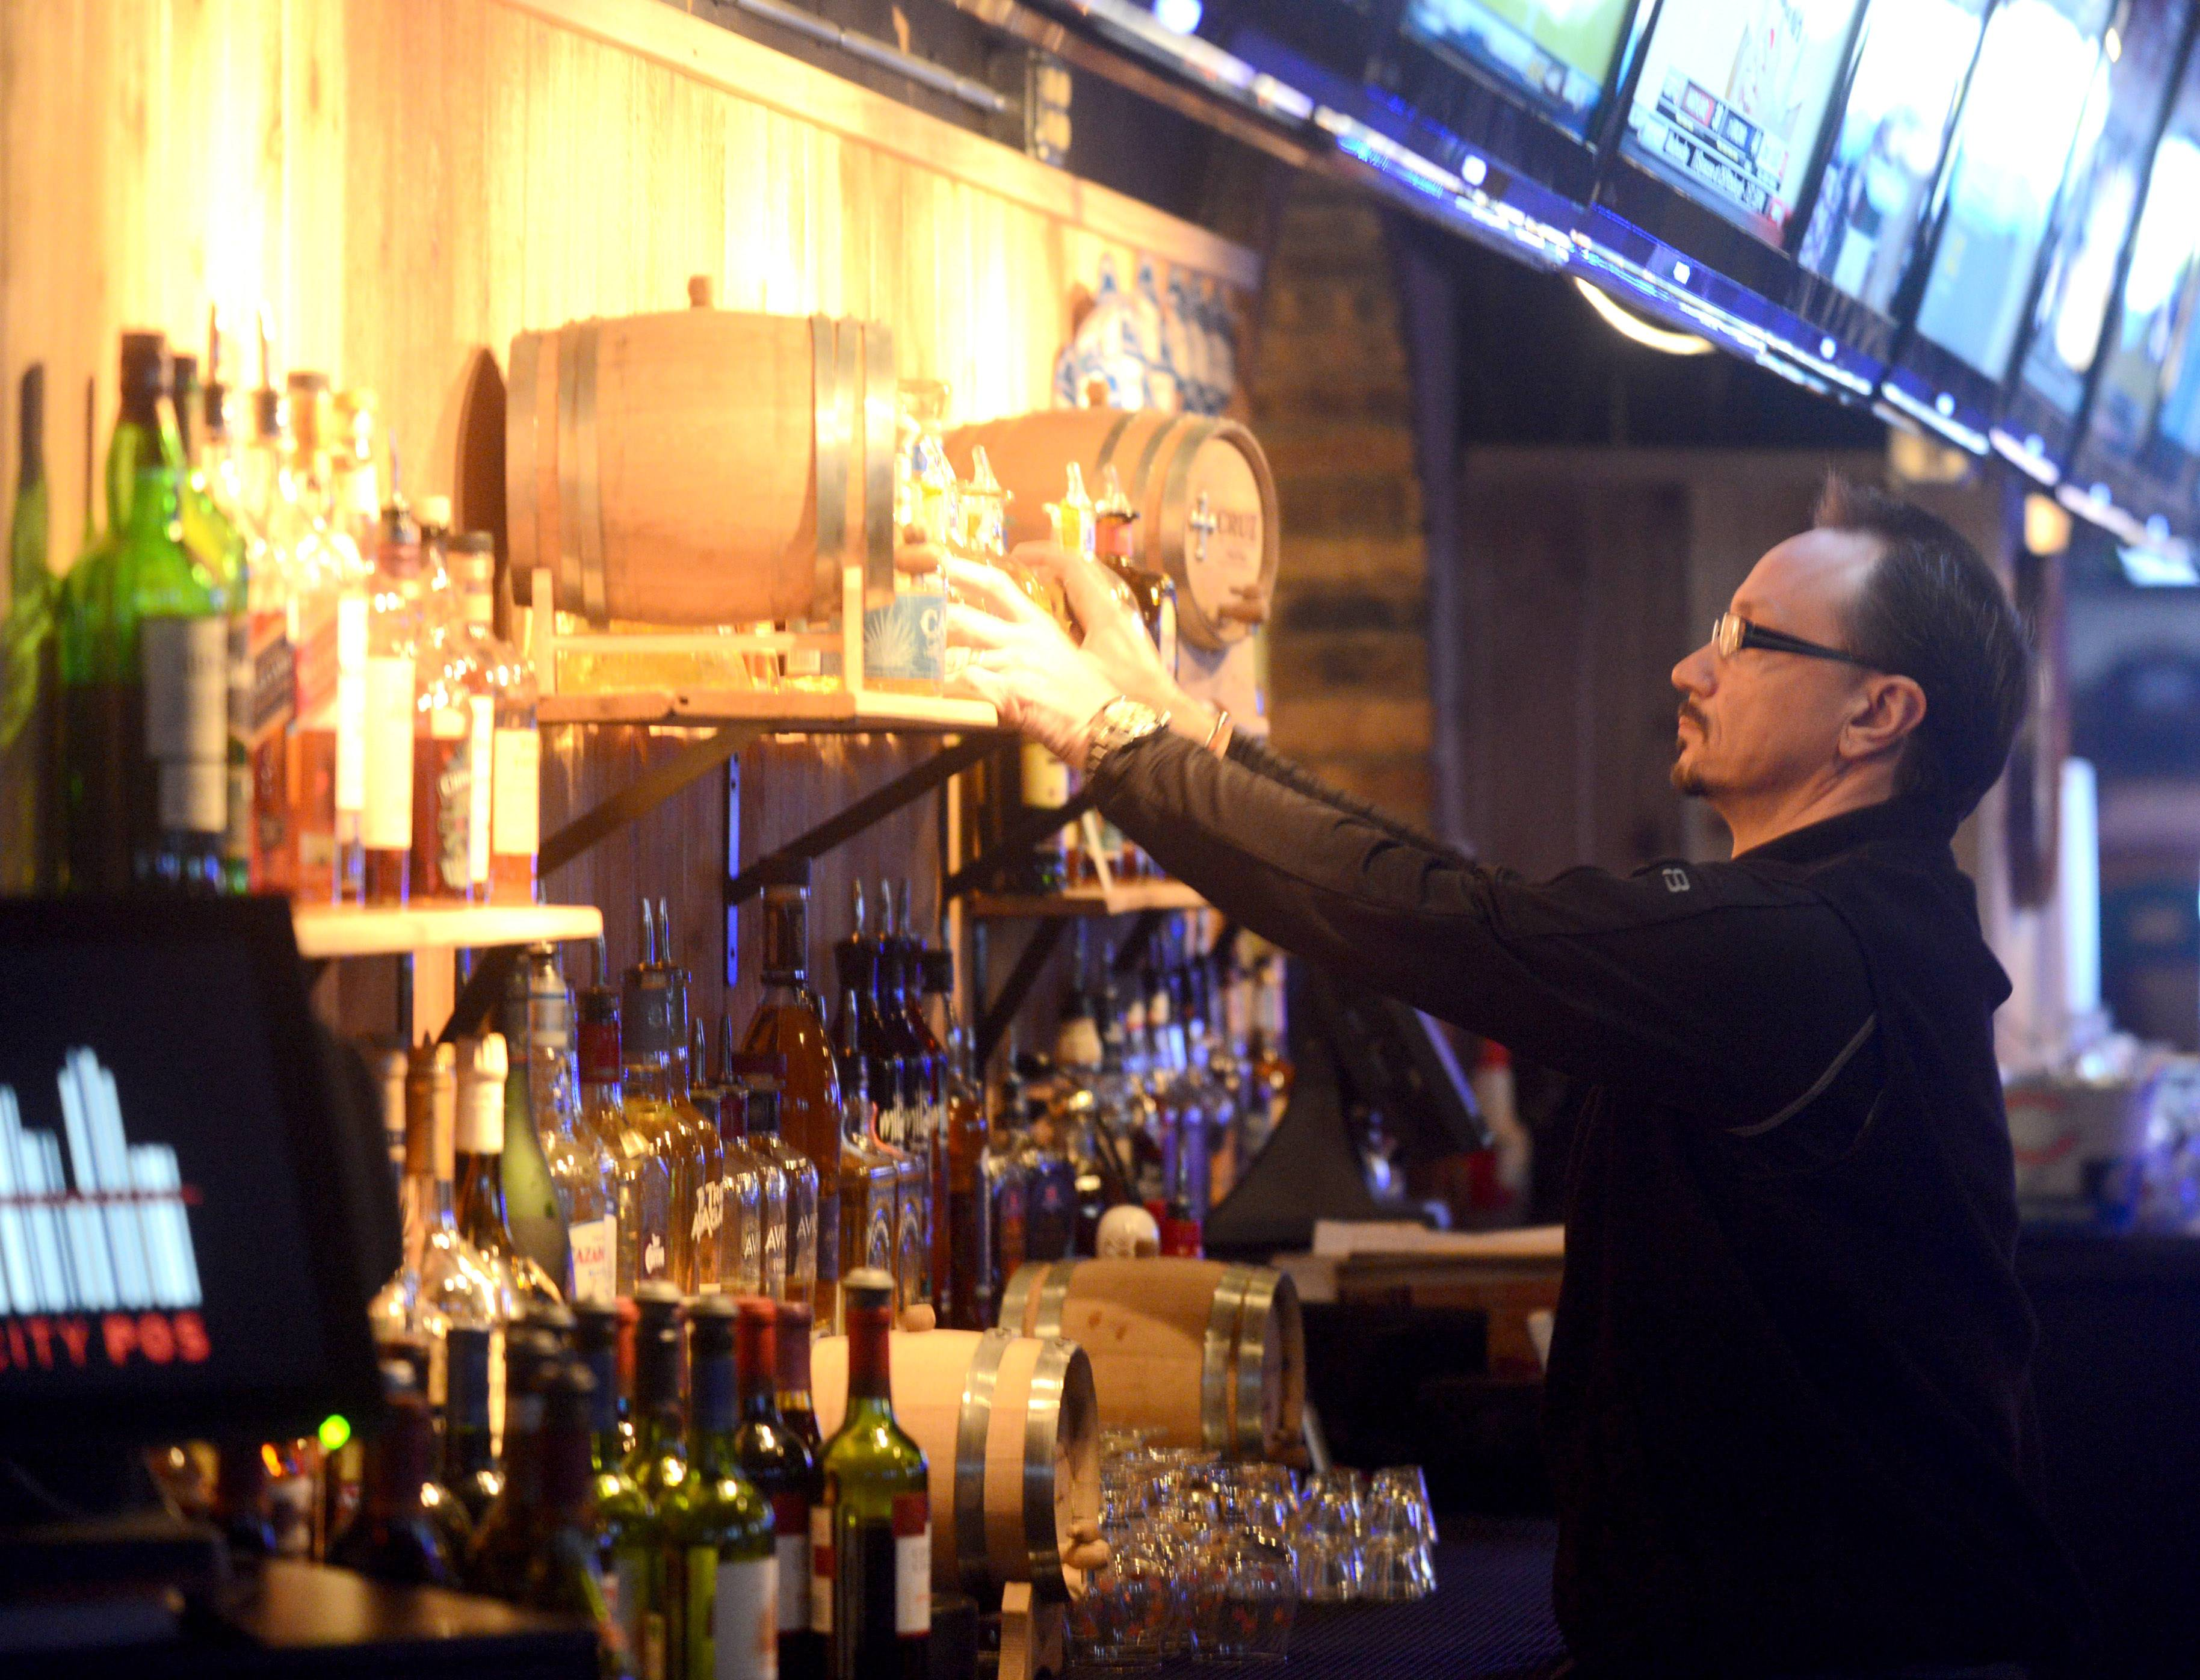 Co-owner Chad Severson arranges bottles behind the bar at M T Barrels in Schaumburg.